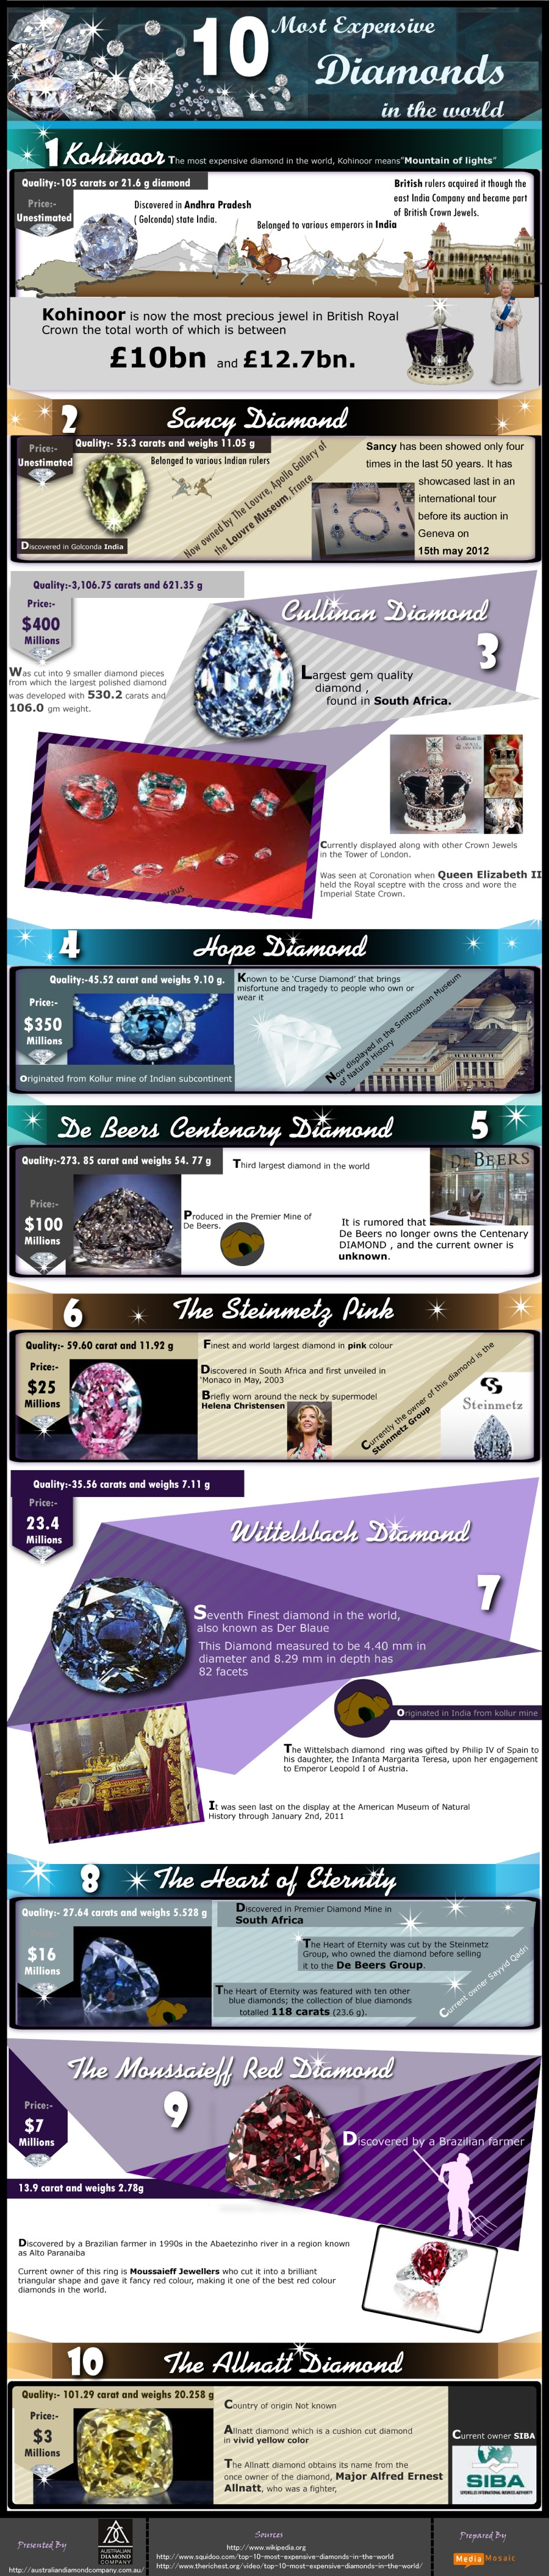 INFOGRAPHIC: The 10 most expensive diamonds in the world